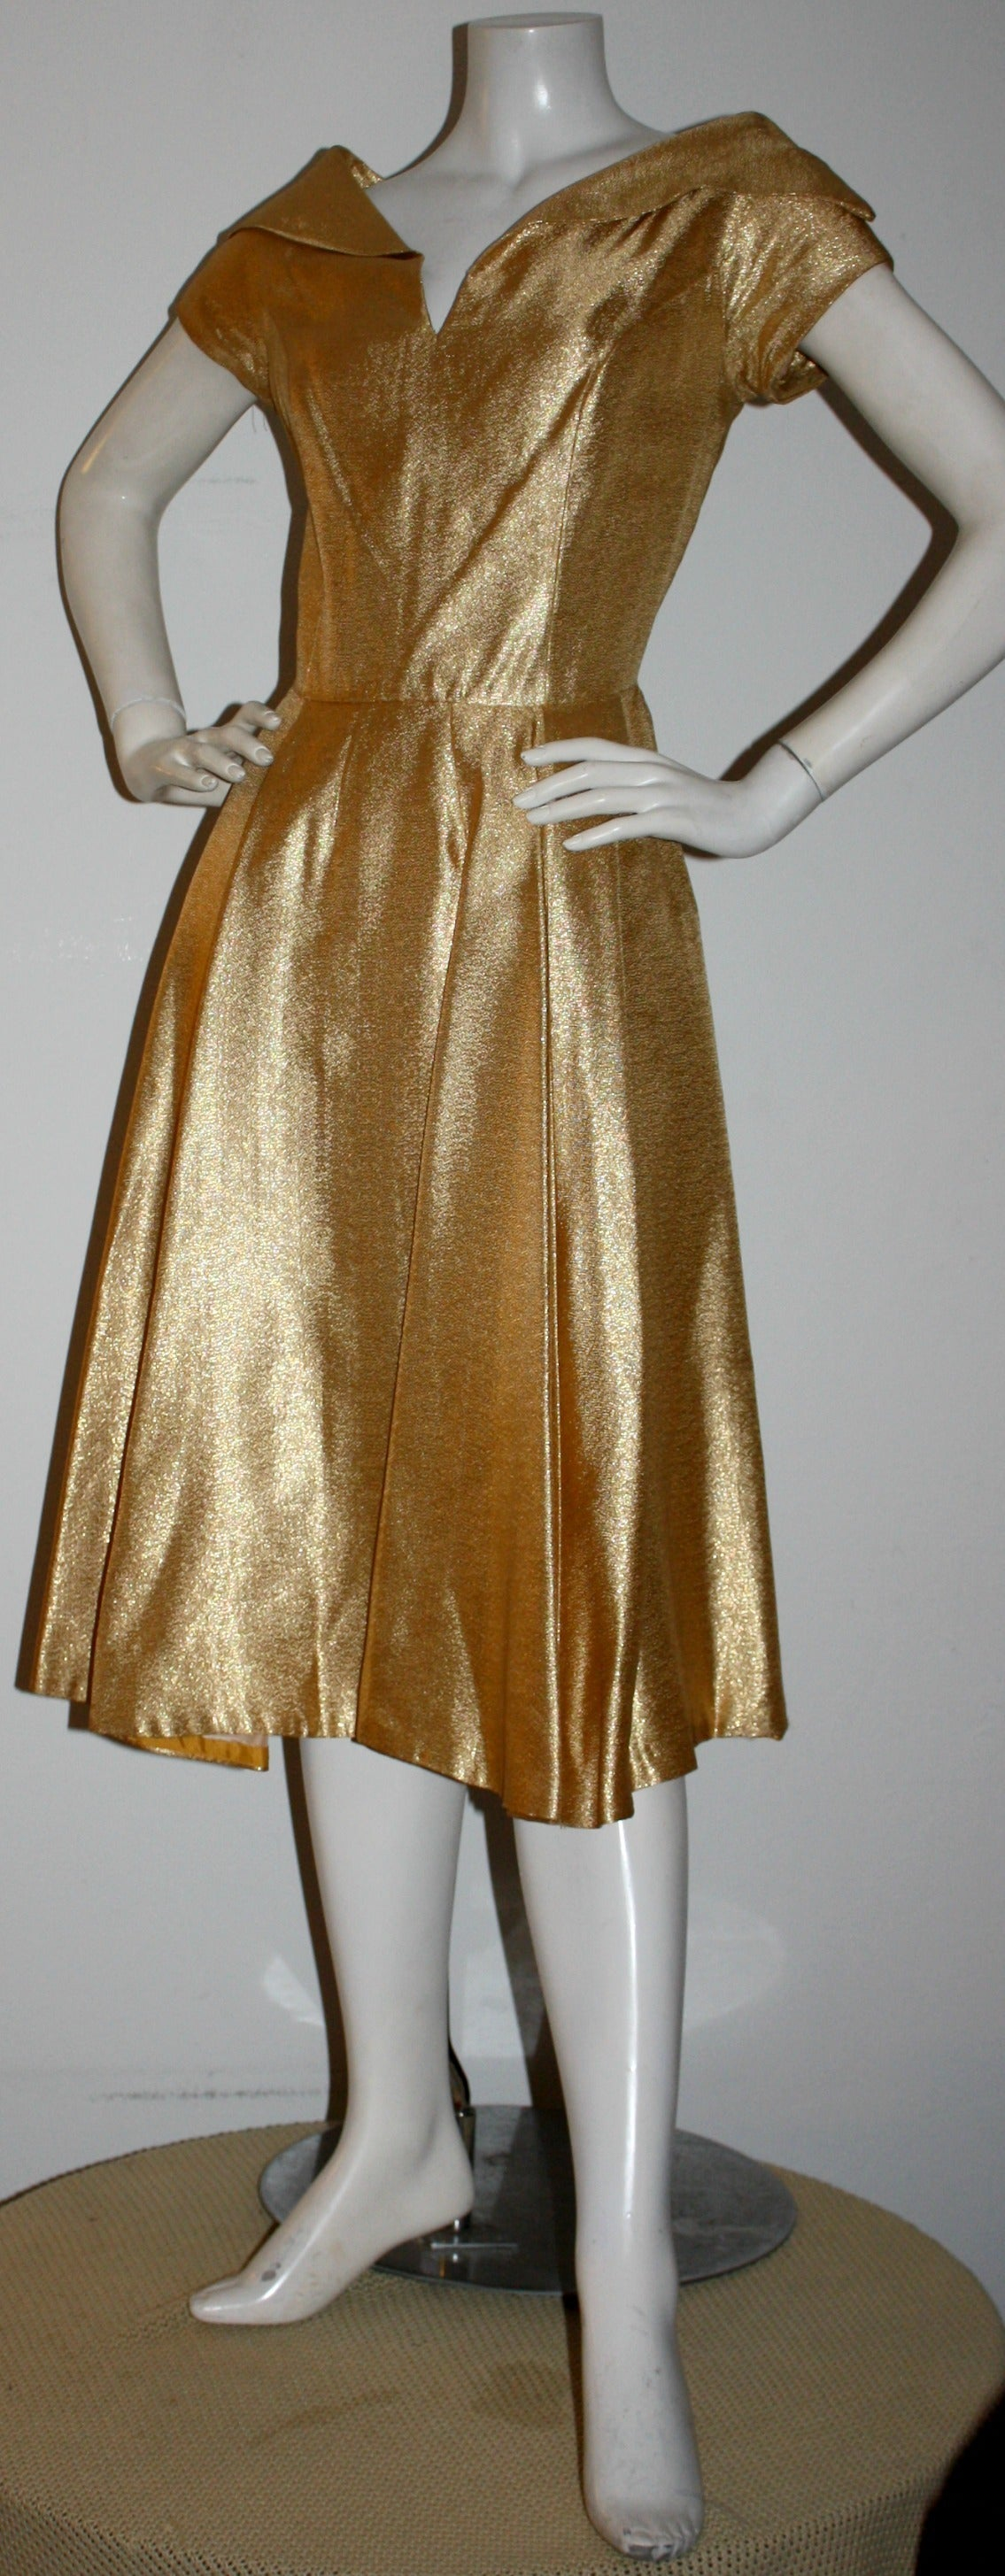 Wonderful 1950s Gold Metallic Vintage Cocktail Dress w/ Full Skirt In Excellent Condition For Sale In San Francisco, CA